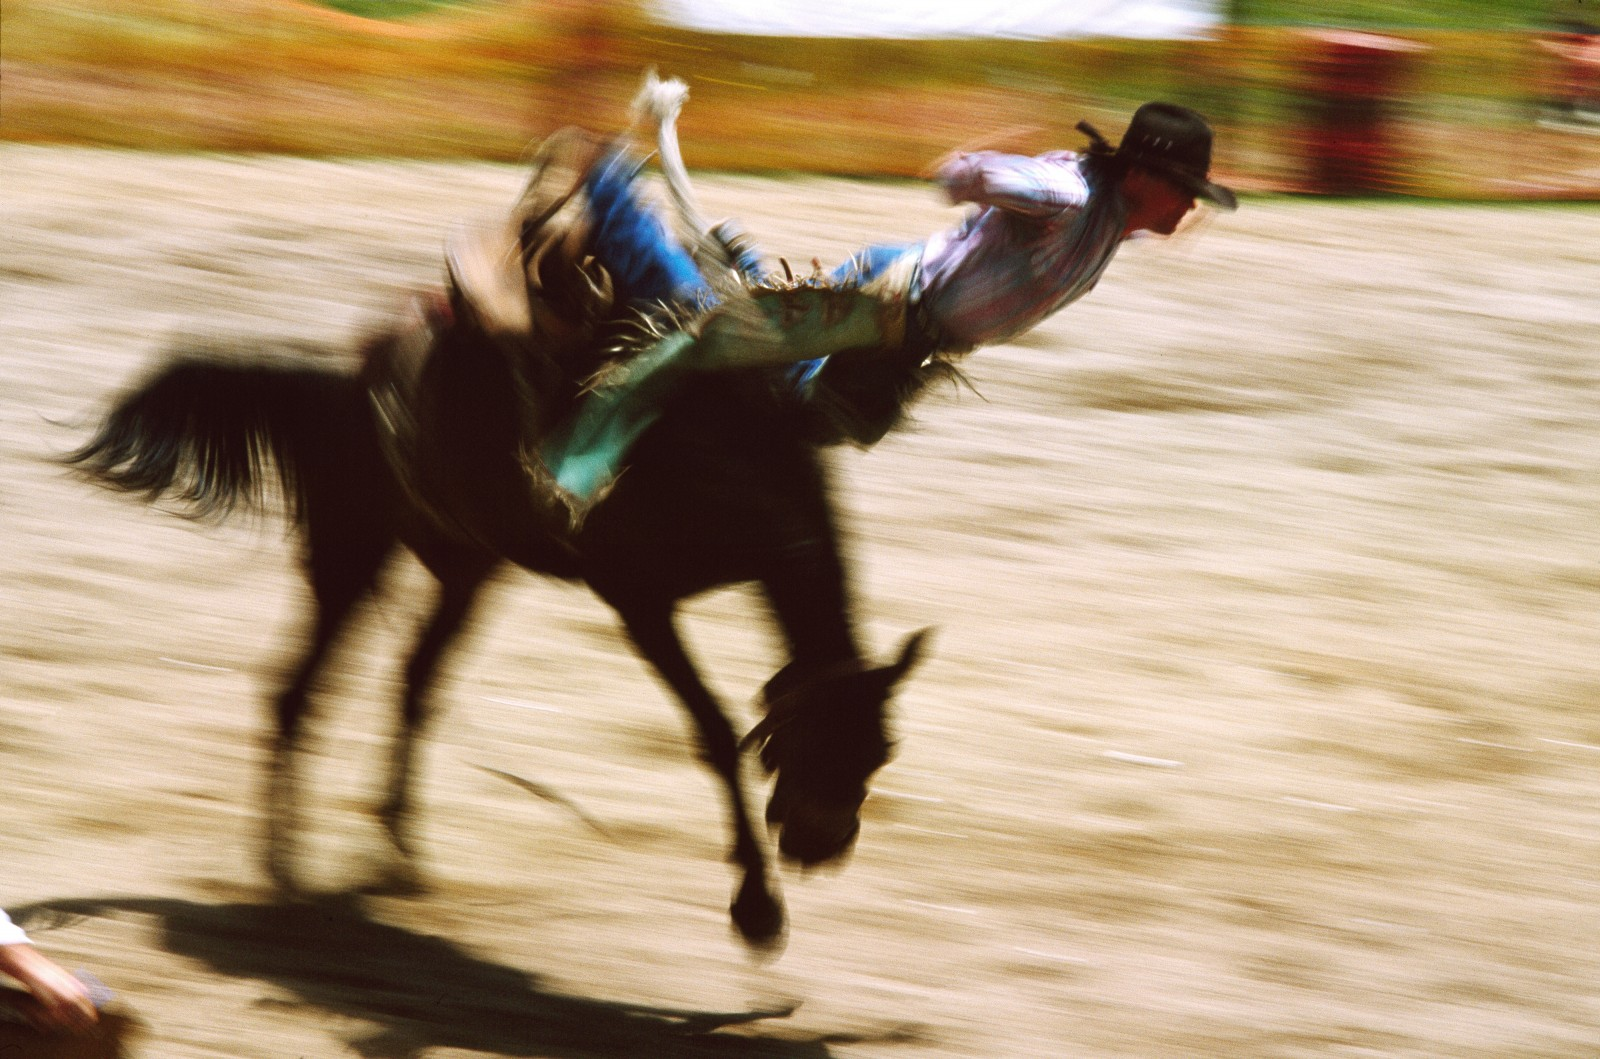 In this high-velocity, high-tension ballet, there are a hundred ways for an outlaw horse to lose his rider. Dave Wright heads over the handlebars for a taste of Rerewhakaaitu real estate in the saddle bronc event.